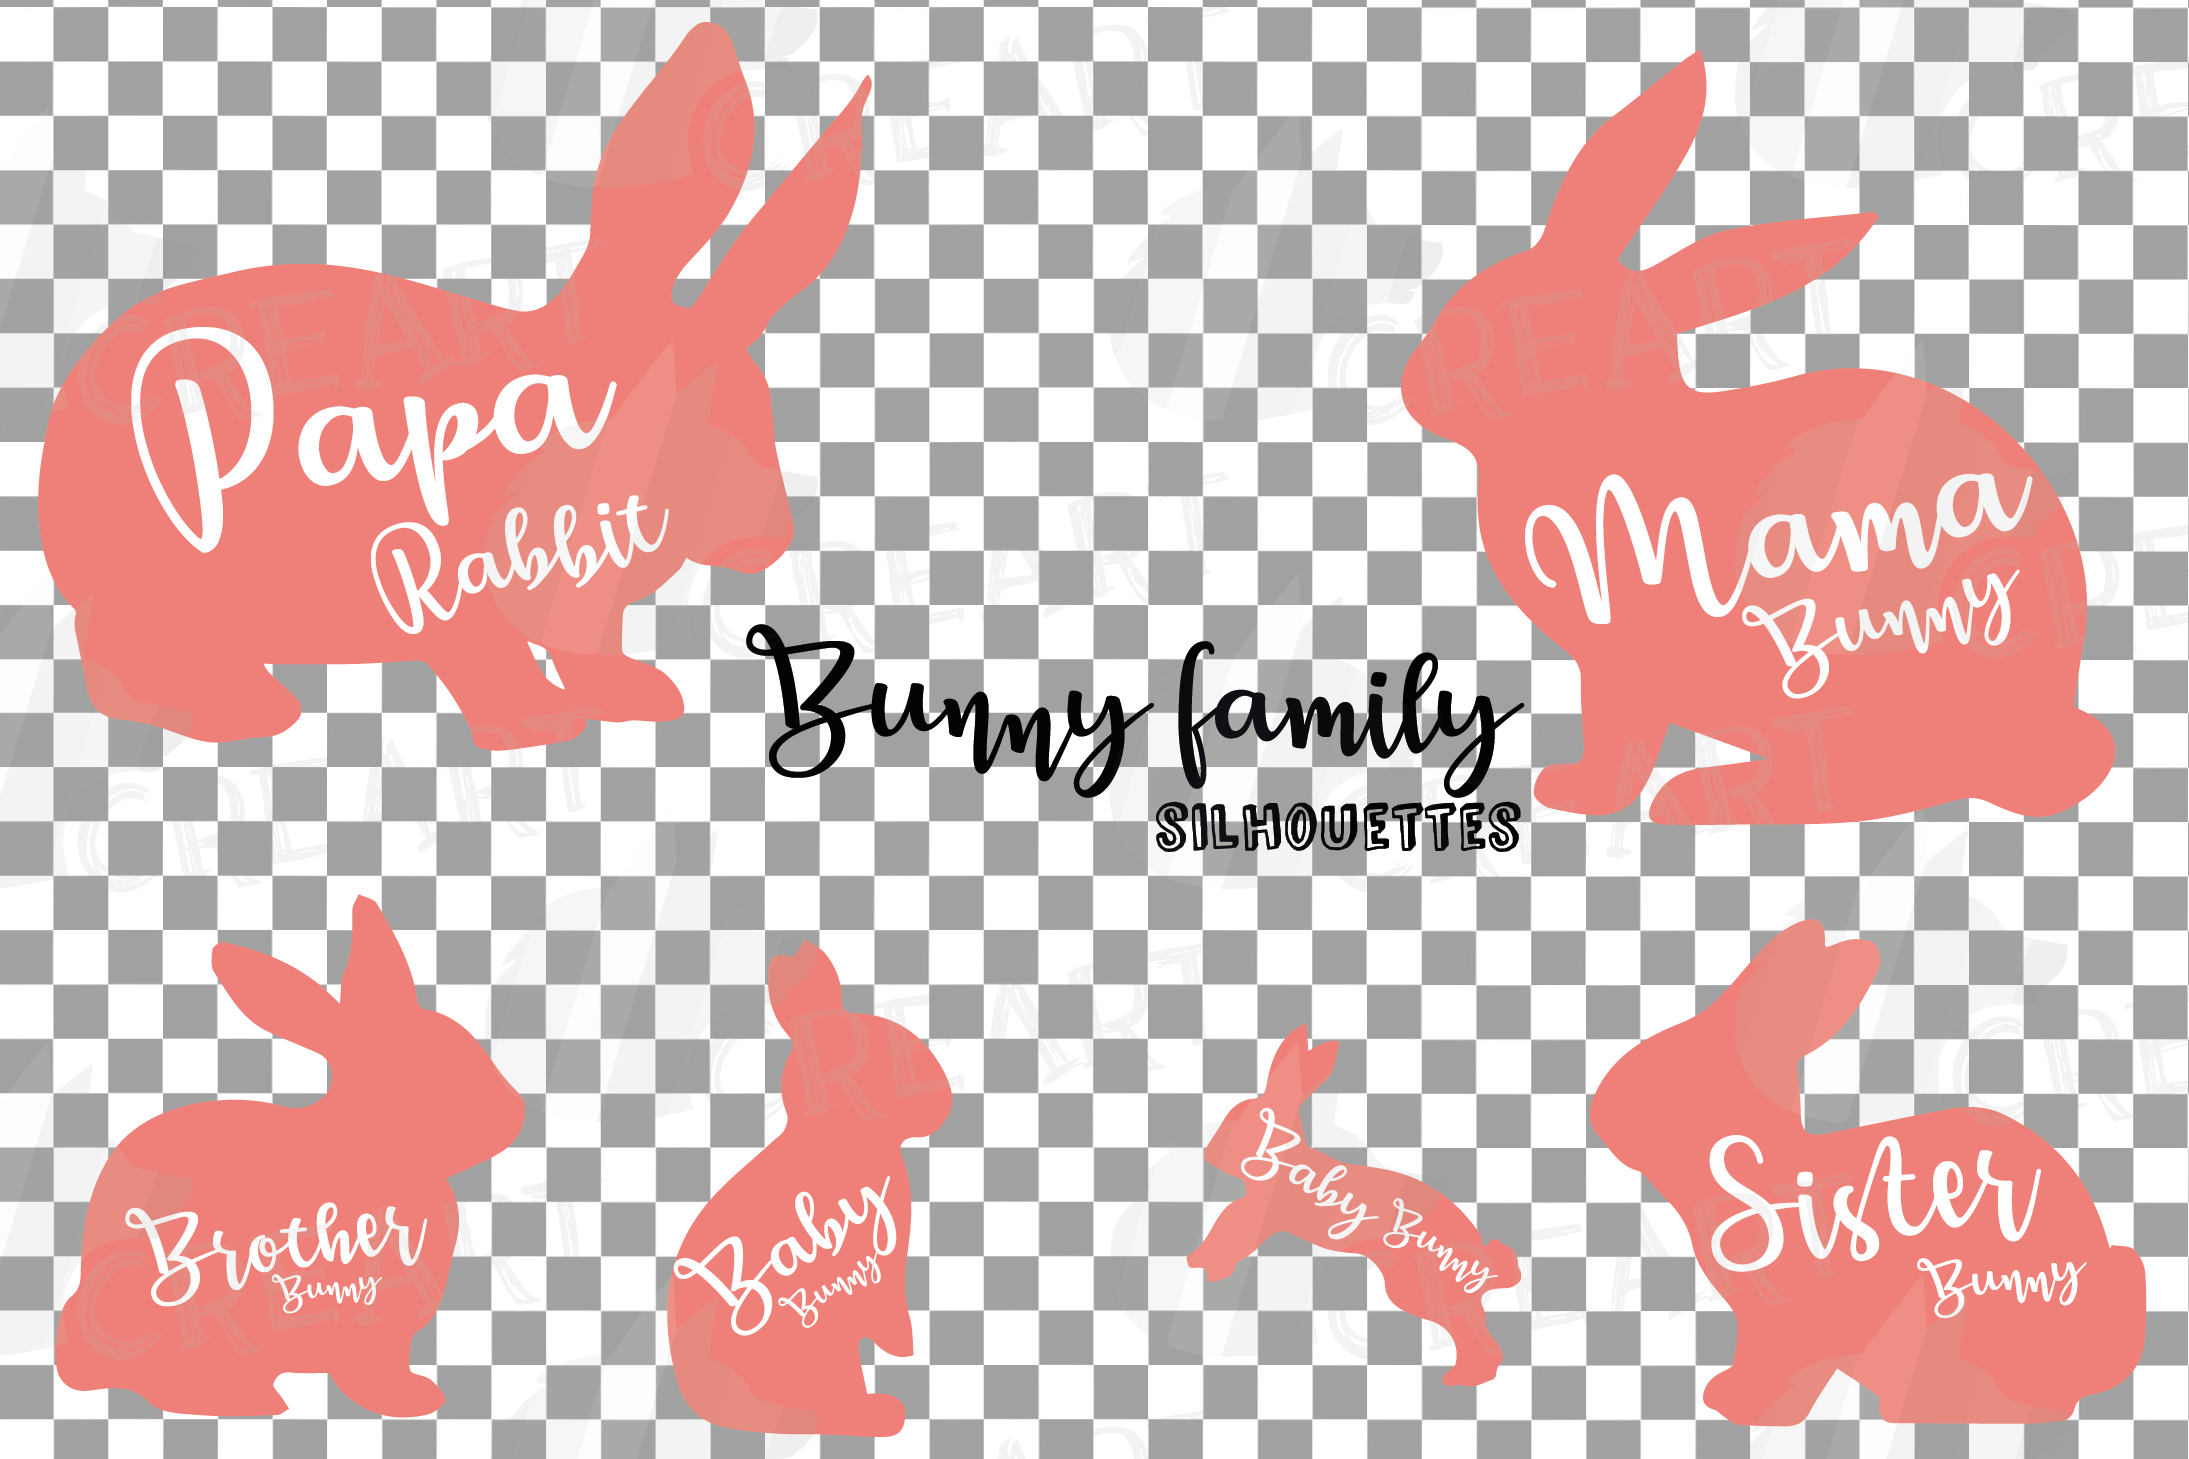 Rabbit family silhouettes, bunny silhouette svg cutting file example image 6